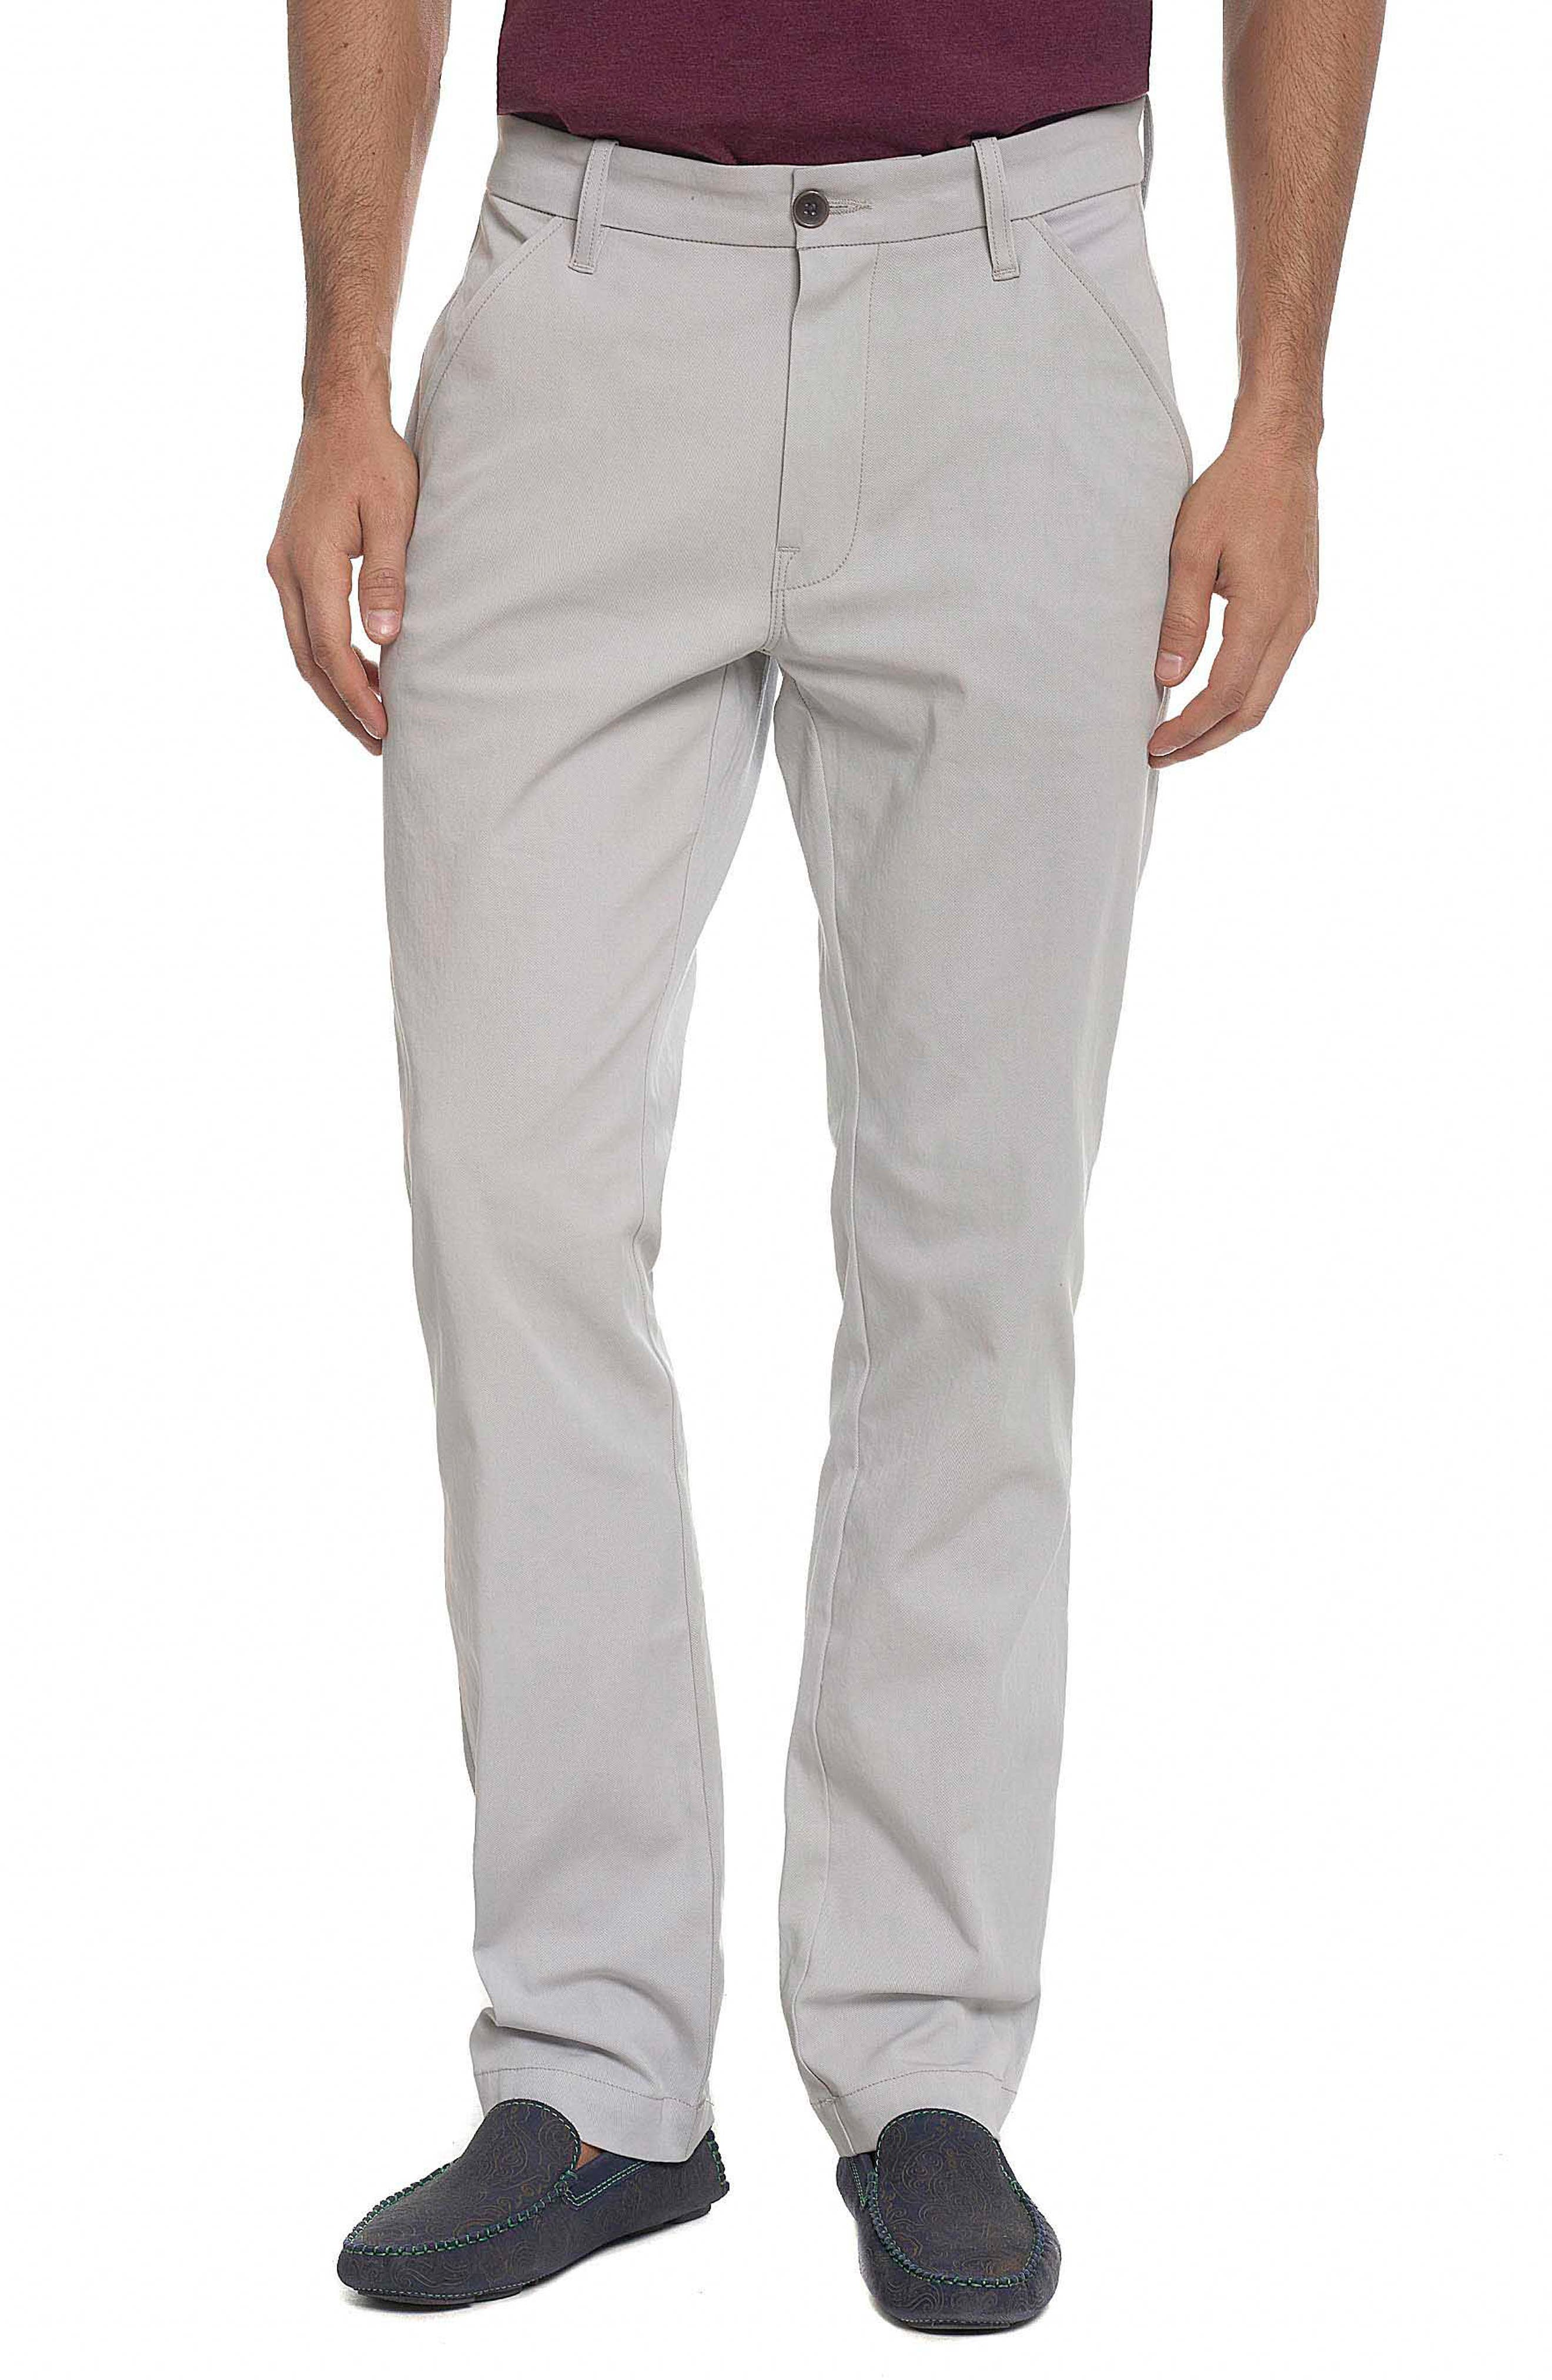 Alternate Image 1 Selected - Robert Graham Layton Tailored Fit Stretch Cotton Pants